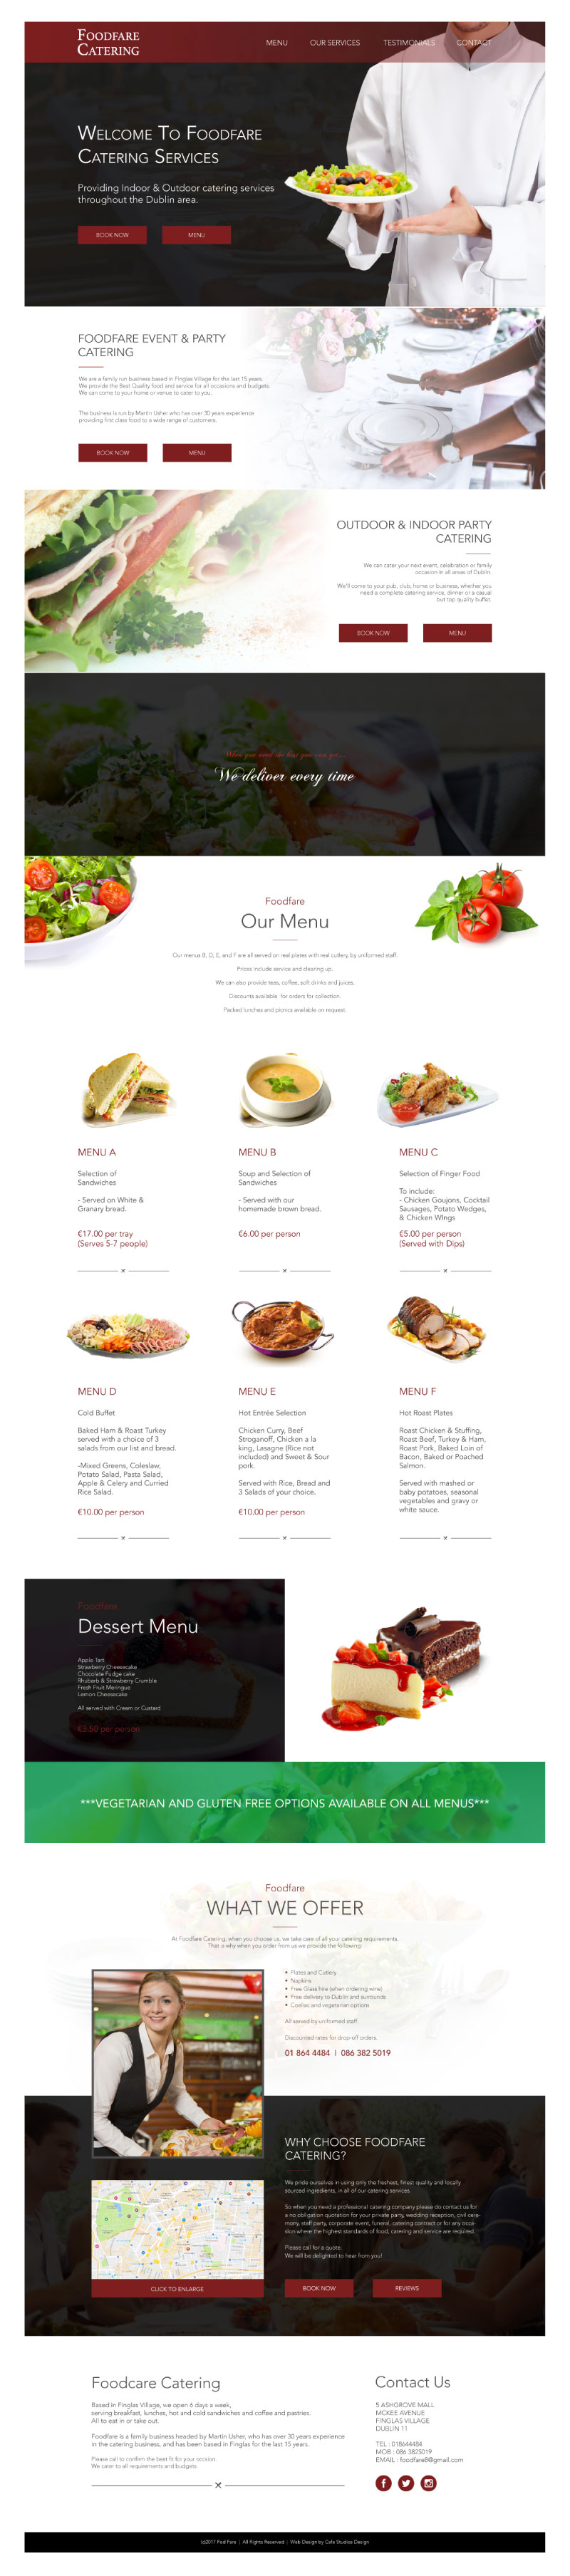 Cafe Studios Design - Homepage Preview _ Food Fare